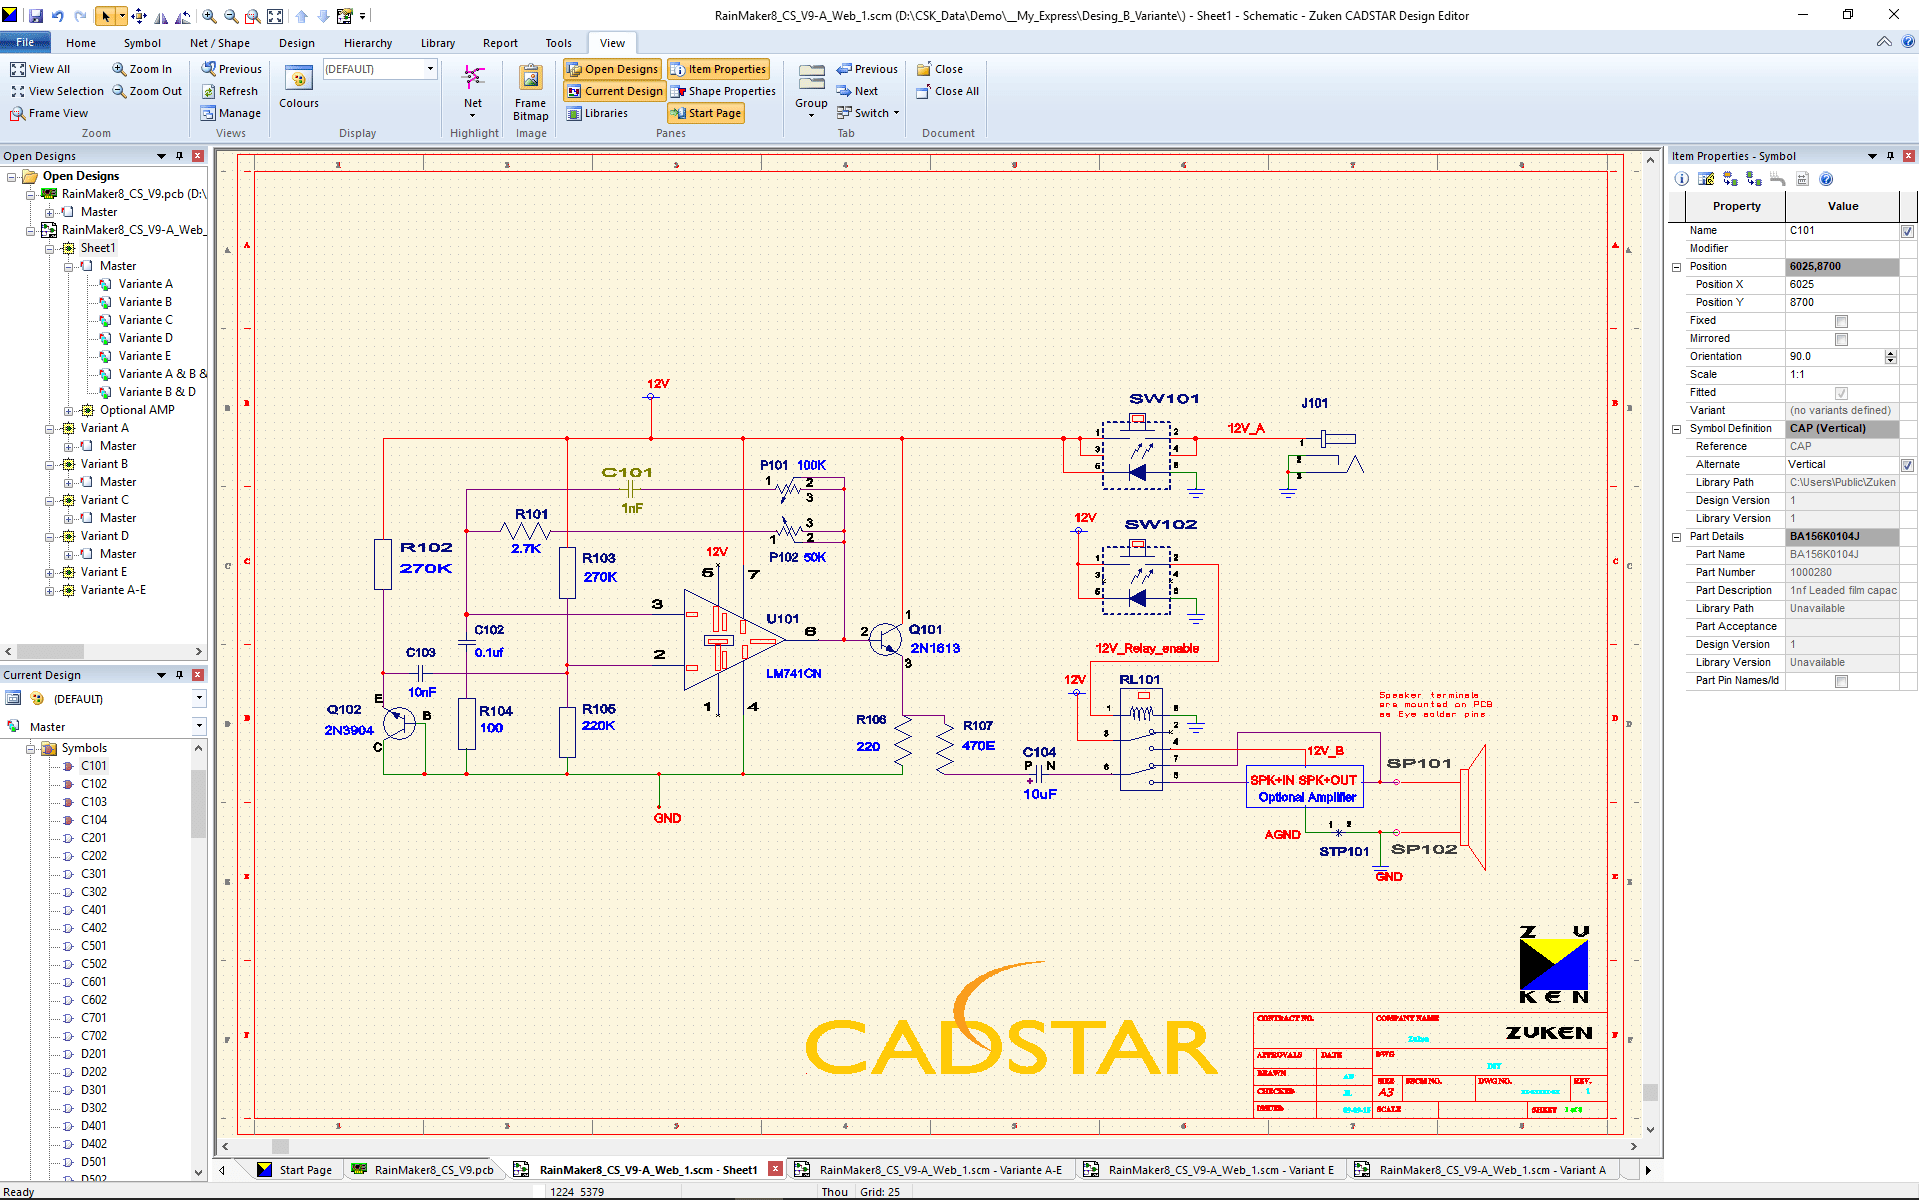 3D Promotion pcb design software cadstar professional schematics variants Master SCM view